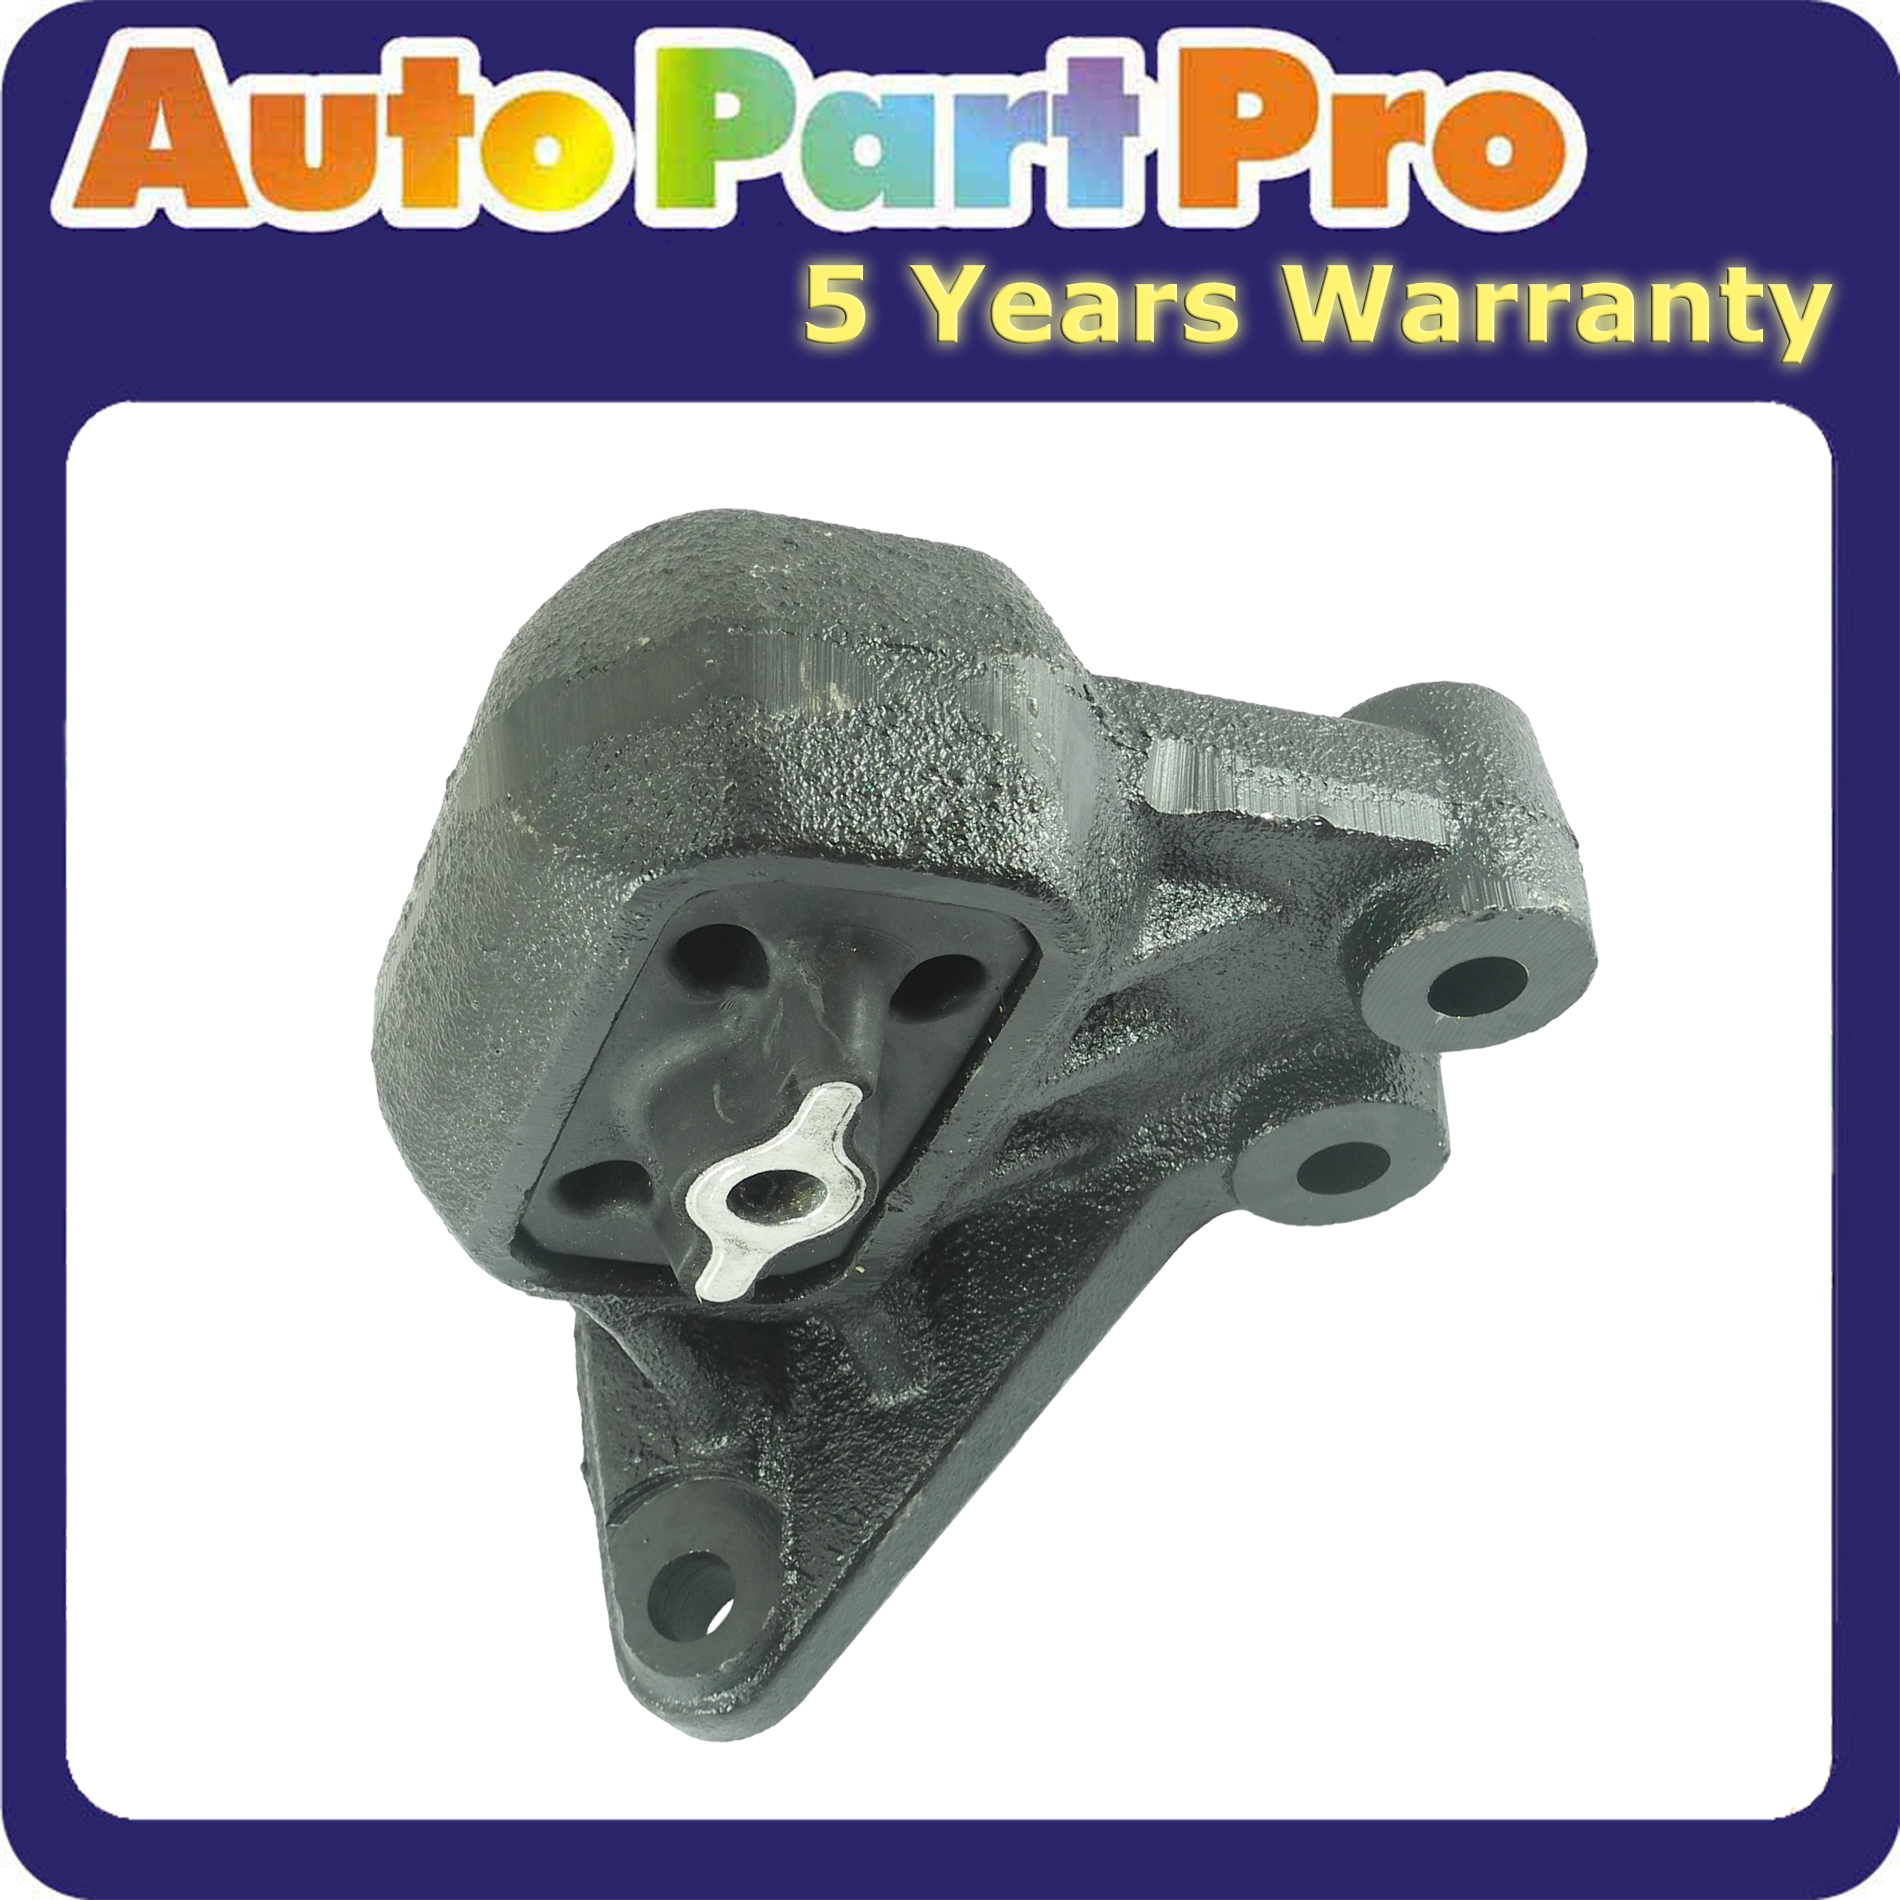 2002-2005 Dodge Ram 1500 4WD 4.7L 5.7L For Front Right 5290 Engine Motor Mount